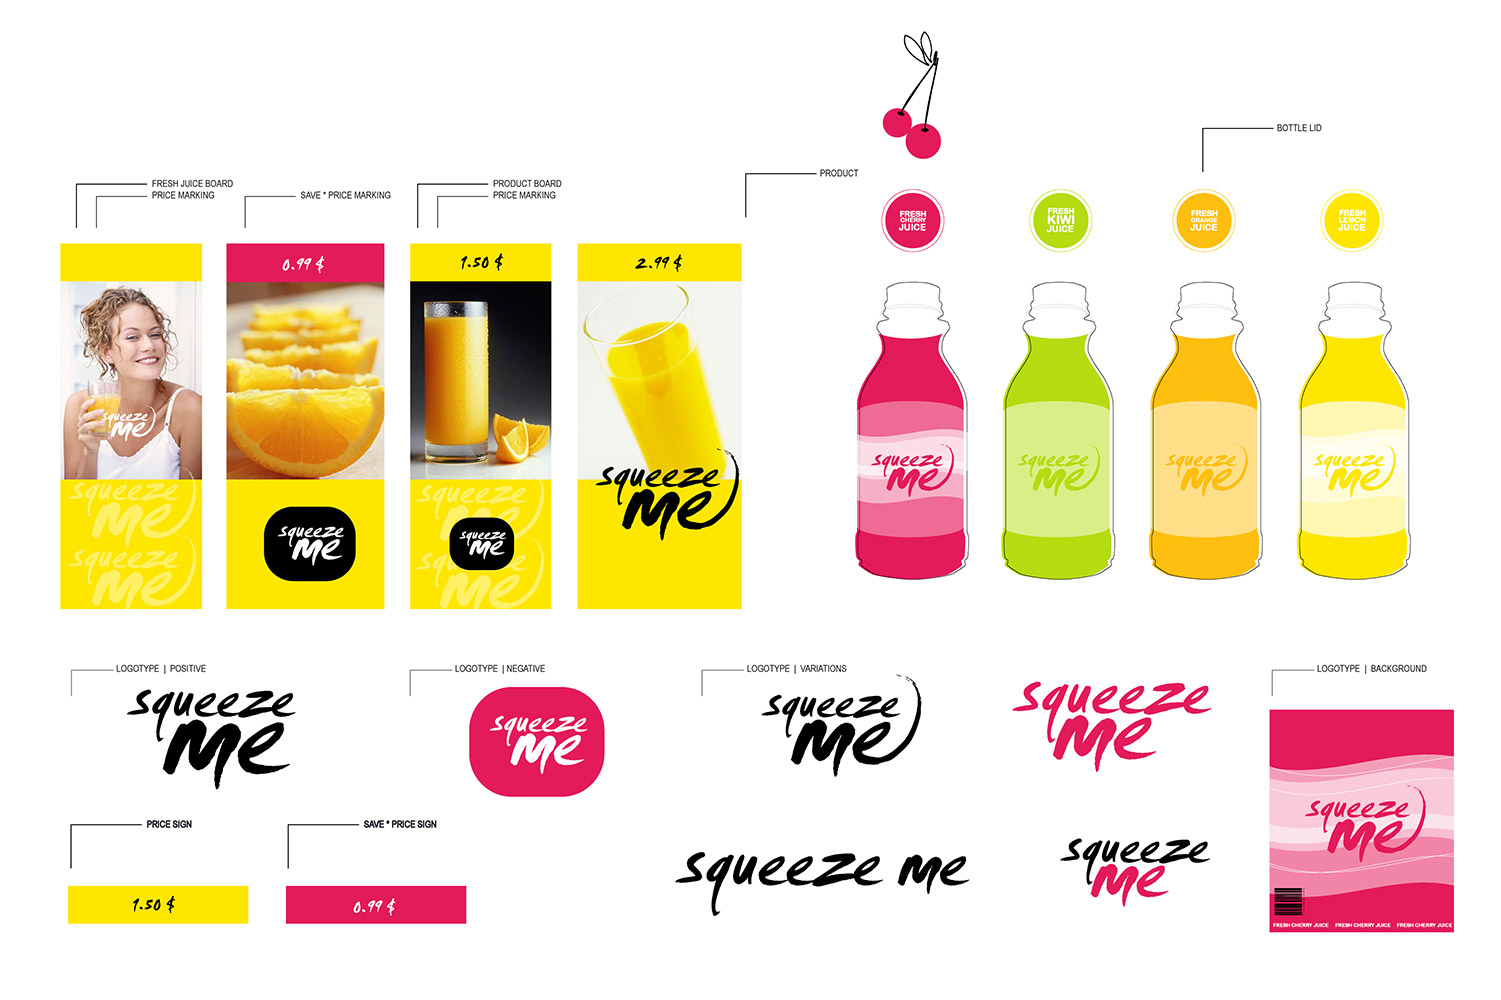 Sqeeze, corporate identity image